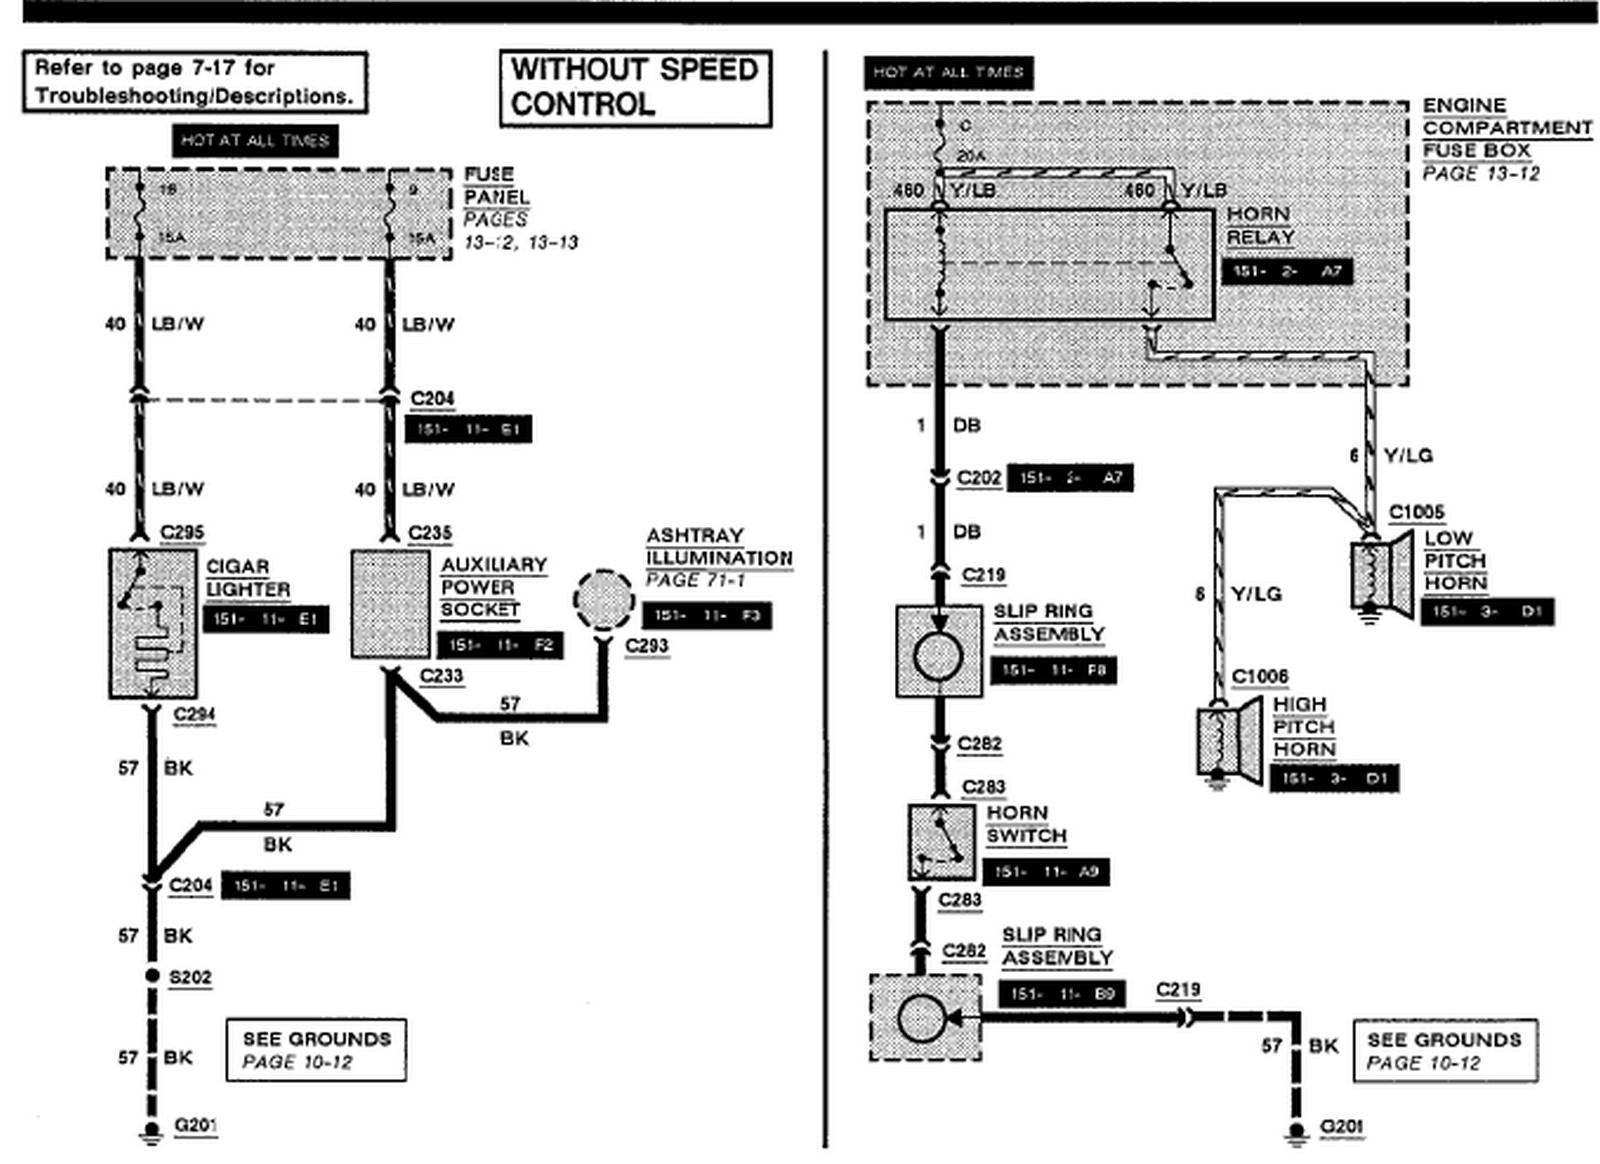 1992 Ford F 250 Wiring Diagram Library 1006 Sienna Engine 150 Alternator Wire Data Schema U2022 Rh Vsetop Co